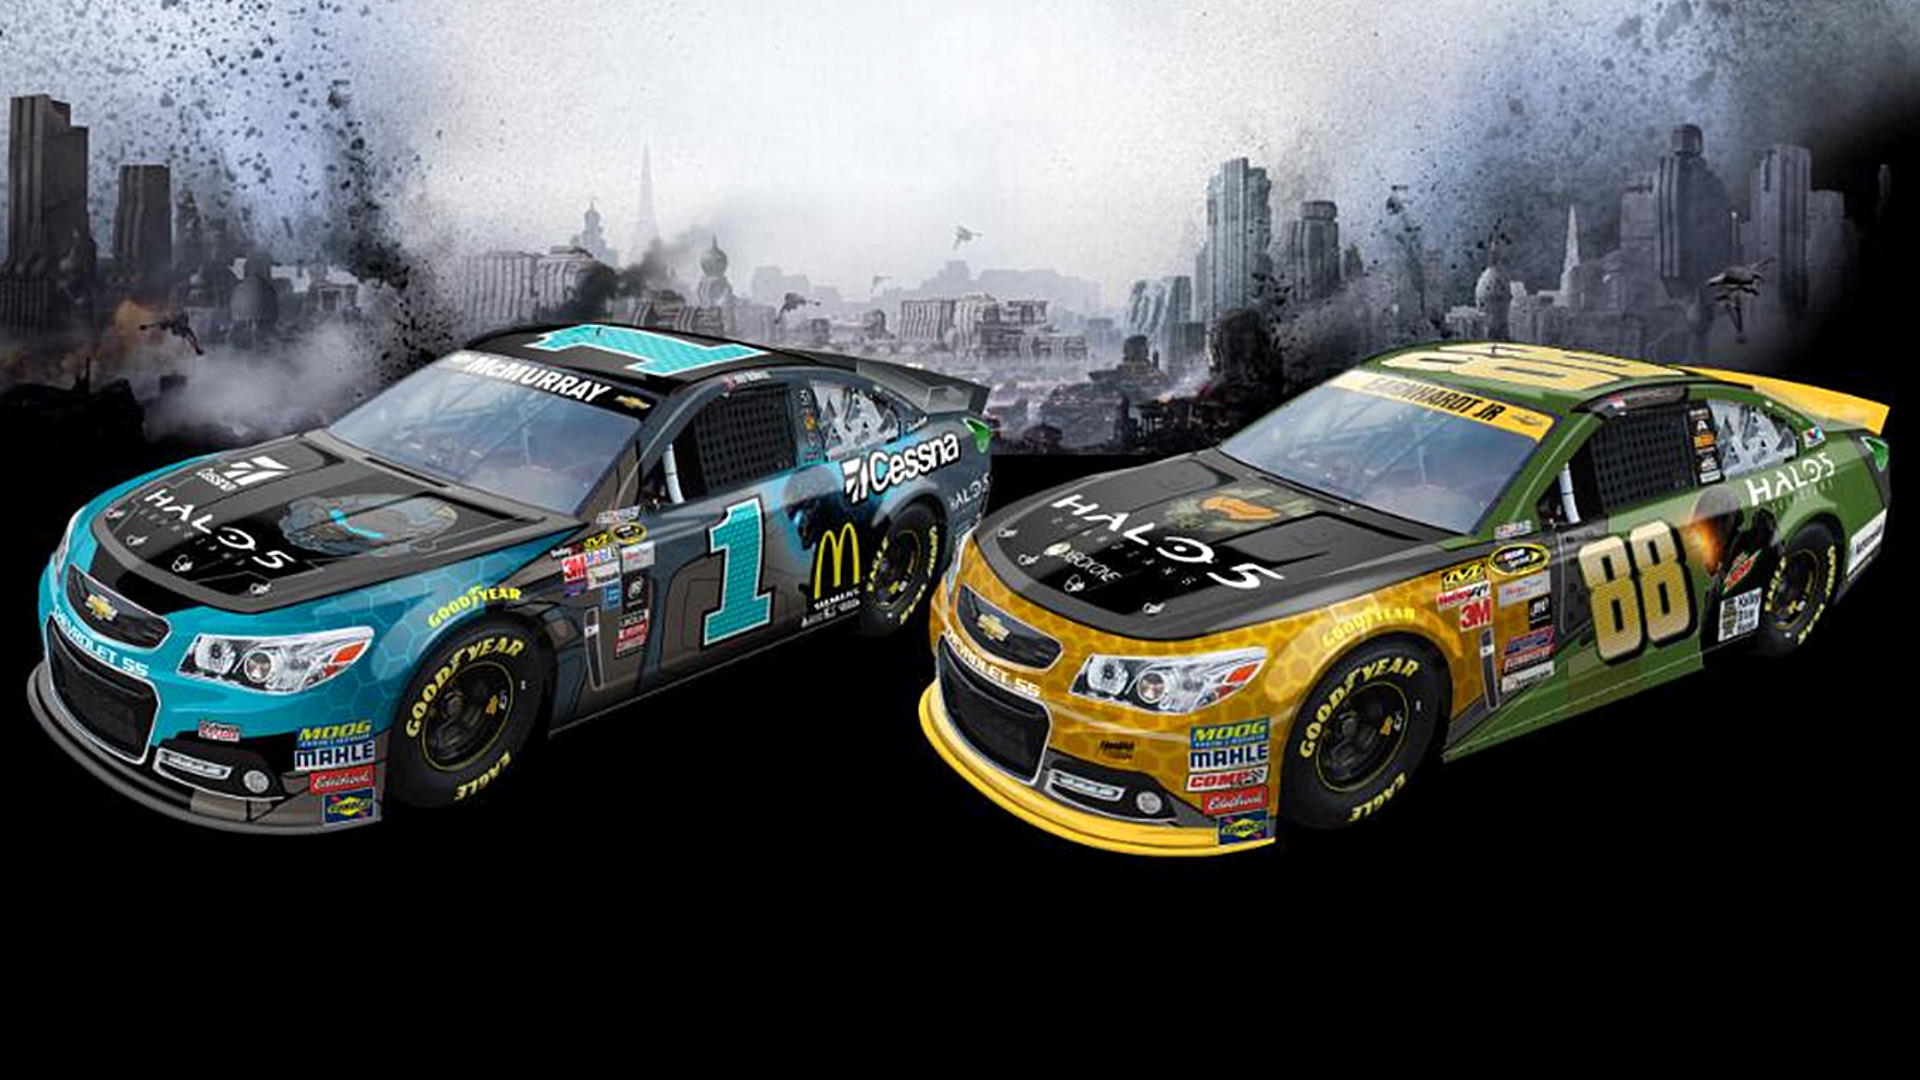 1920x1080 Dale Earnhardt Jr., Jamie McMurray cars to have 'Halo' schemes | NASCAR |  Sporting News